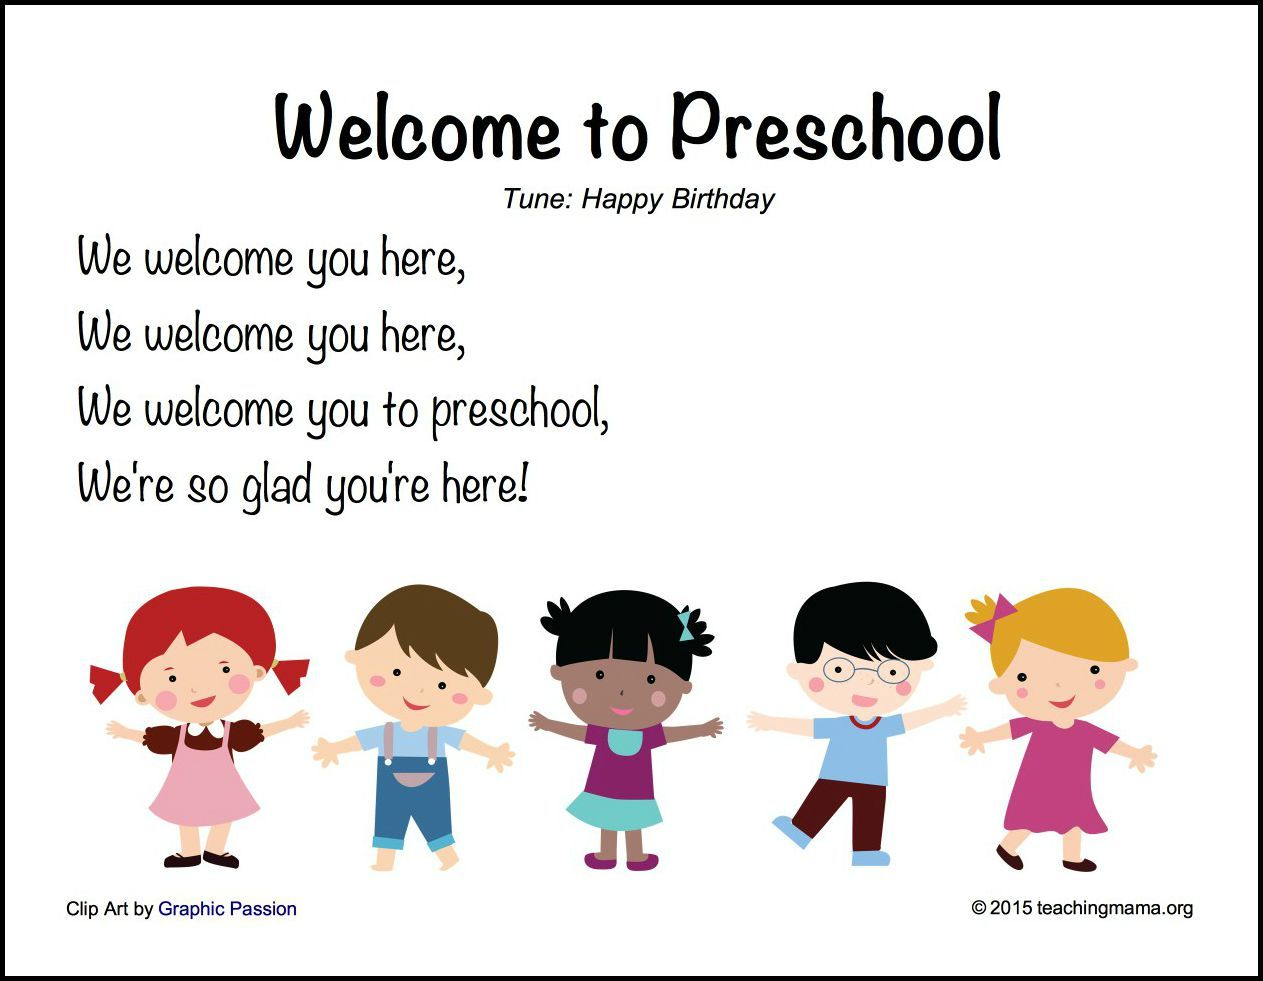 Back to School Songs for Preschoolers (With images) | Welcome to ...